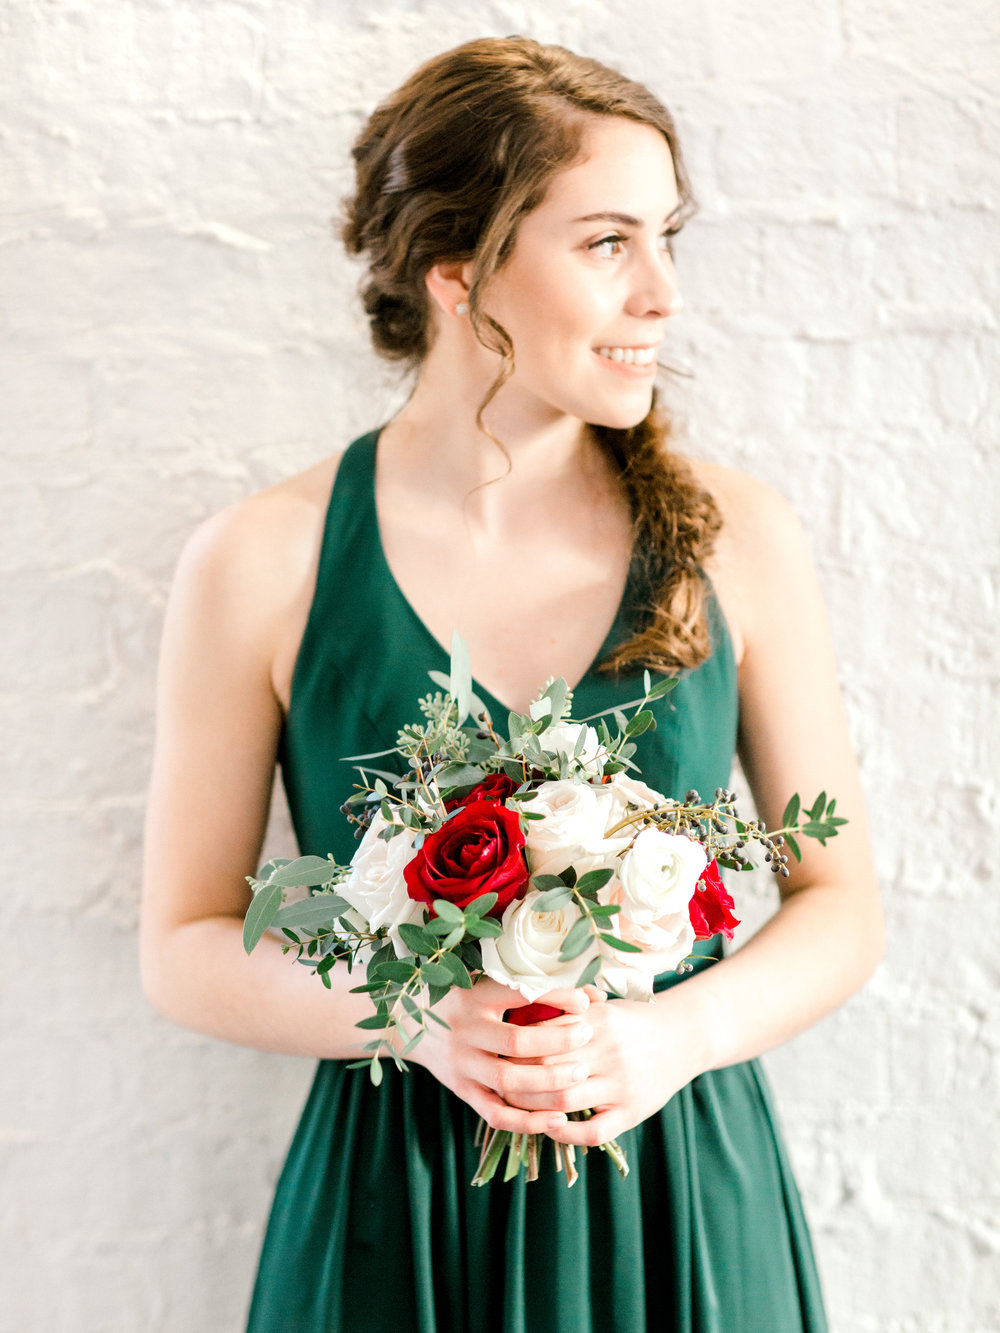 Courtney-Inghram-Historic-Post-Office-Hampton-Virginia-Wedding-Florist